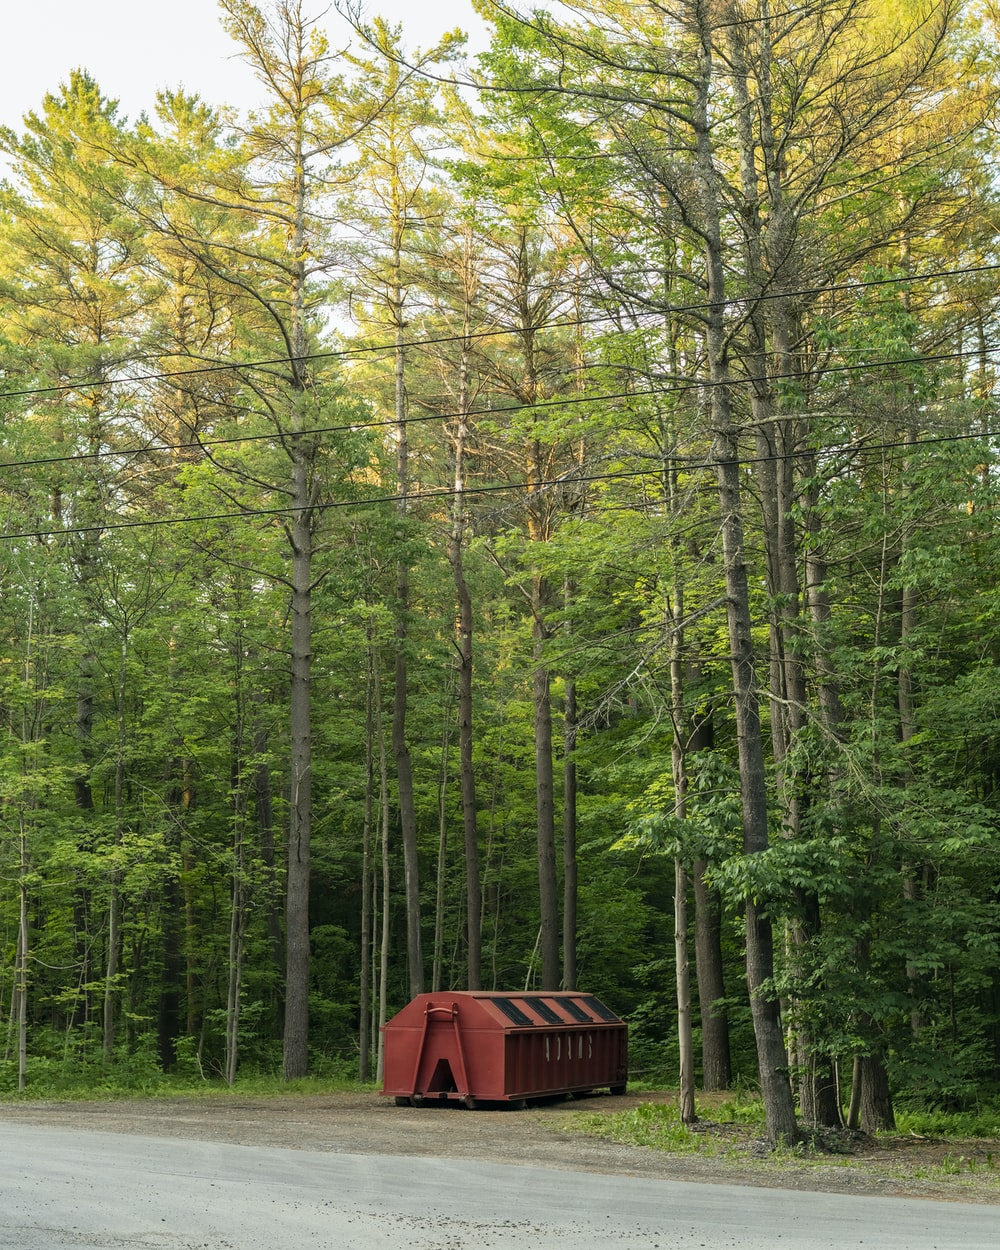 red and brown wooden shed in the middle of forest during daytime